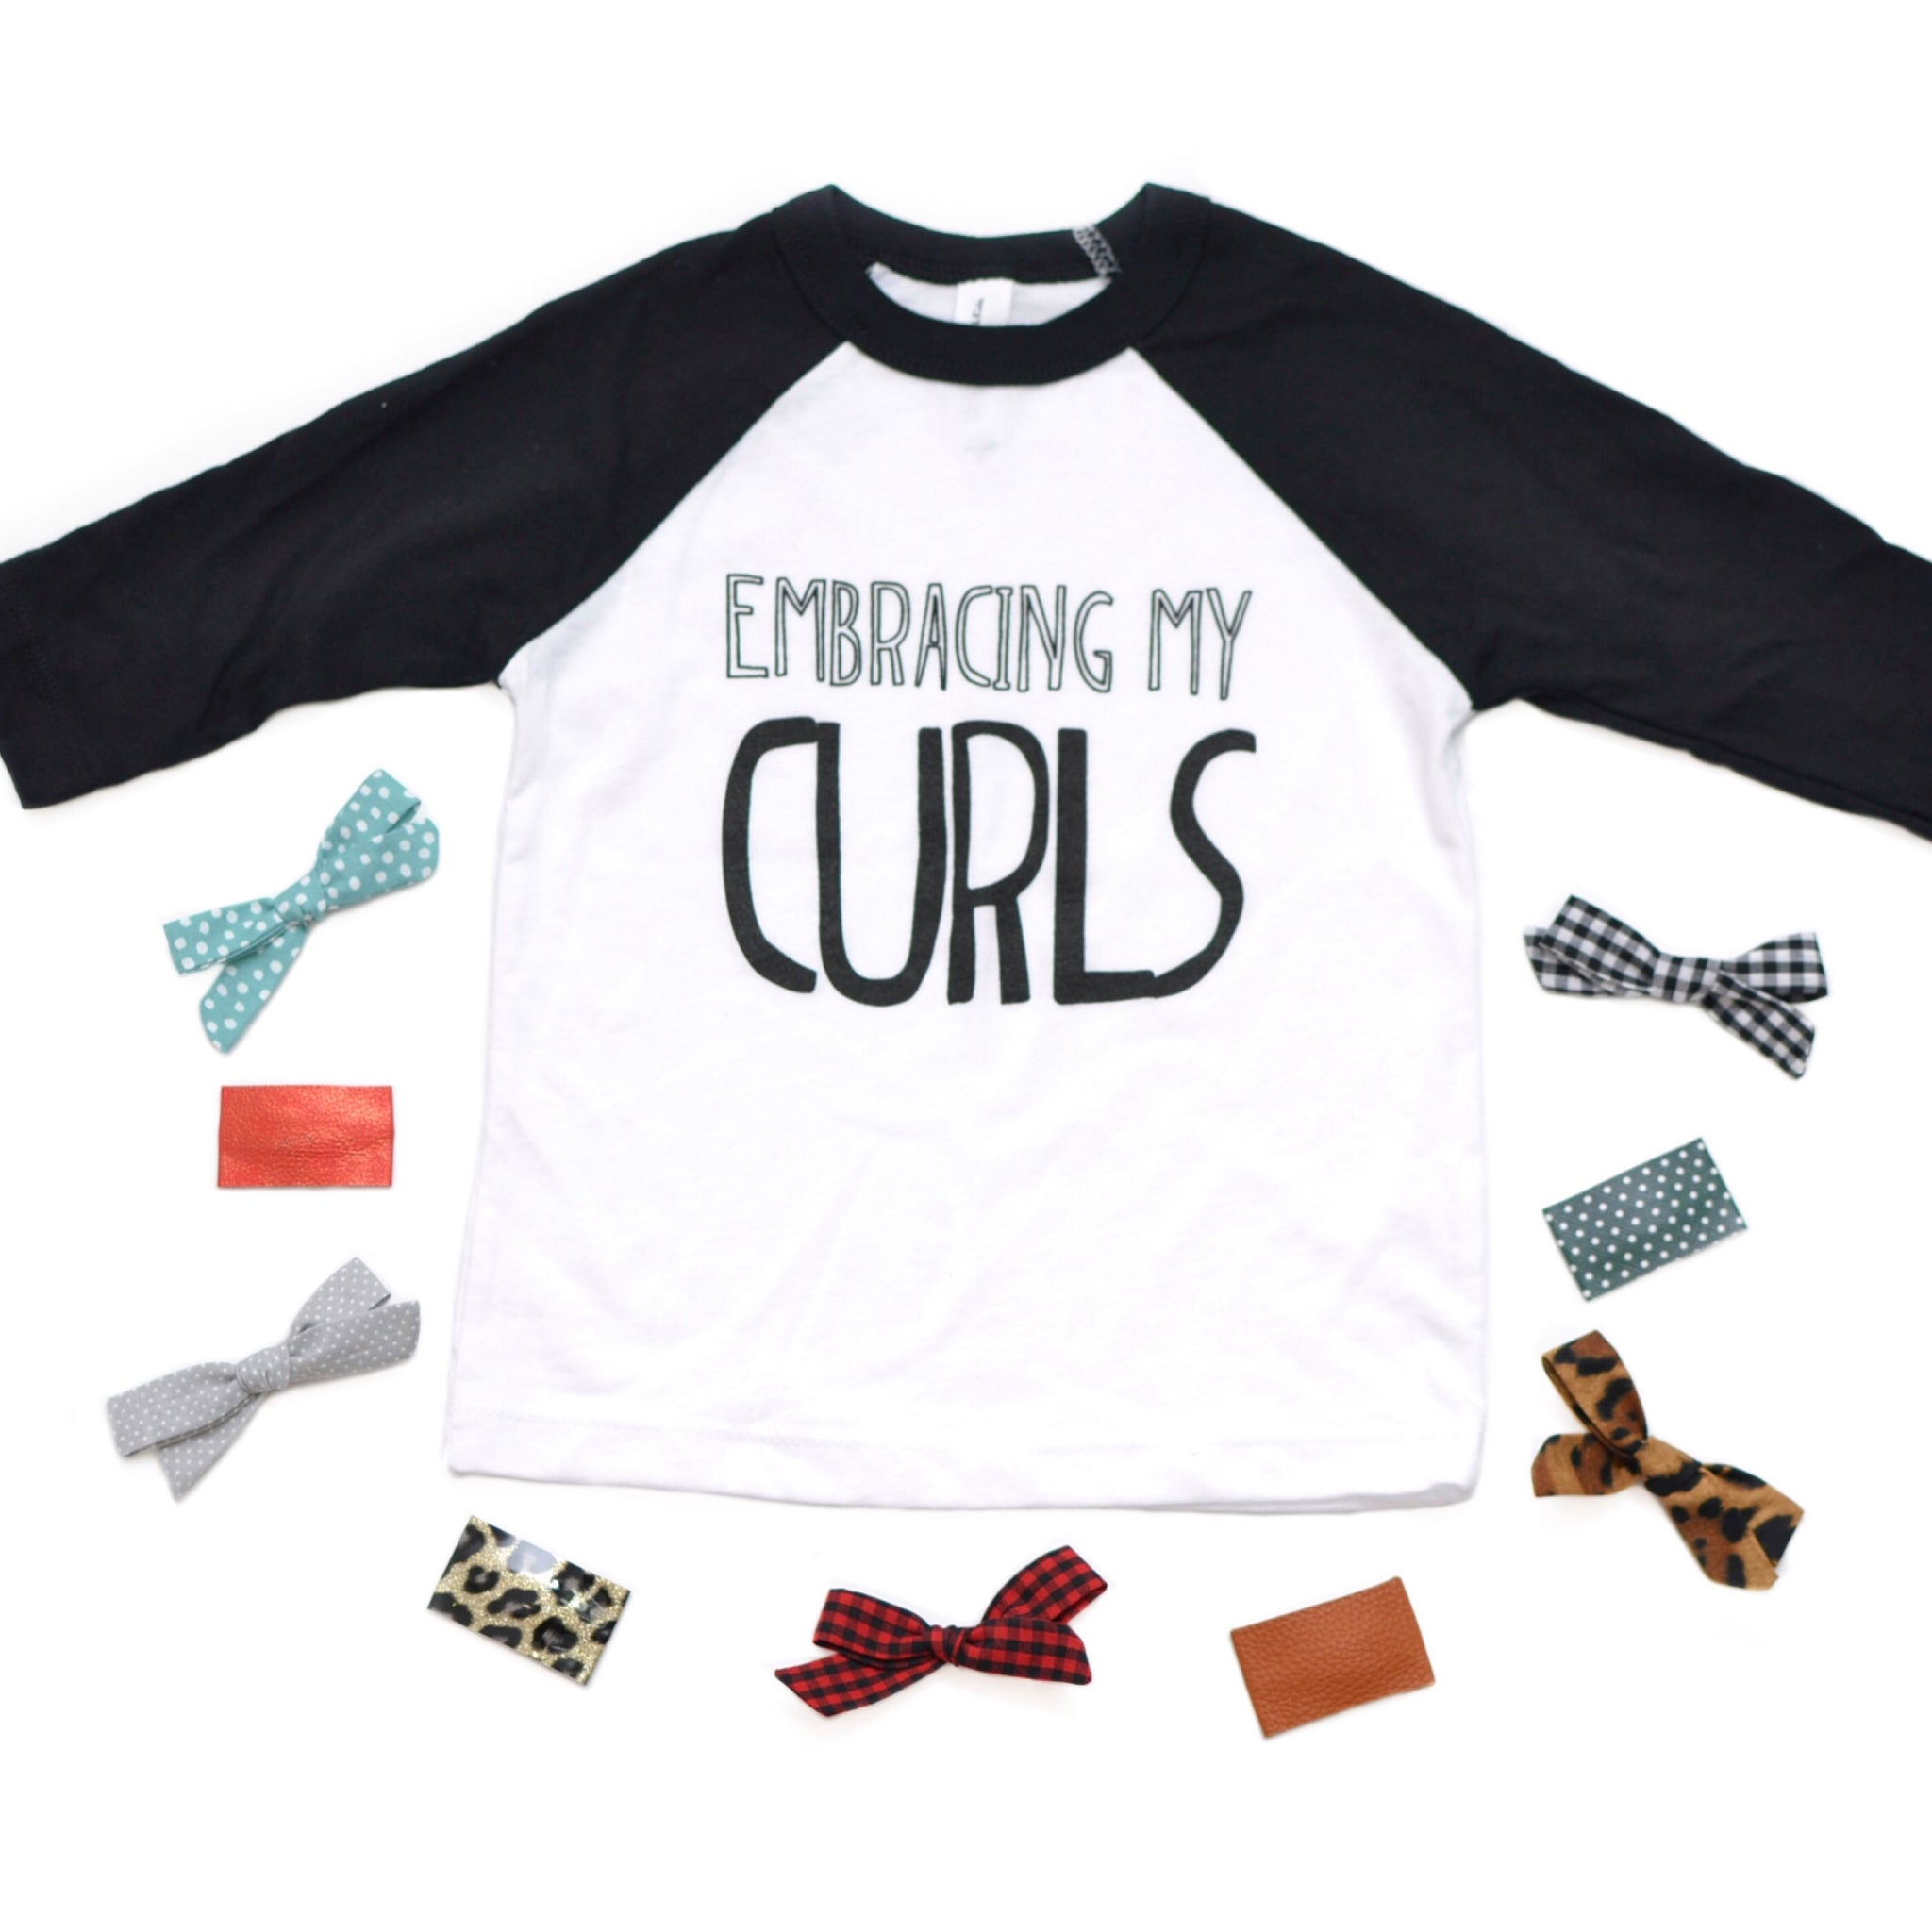 Embracing My Curls [Youth 3/4 Length Raglan]